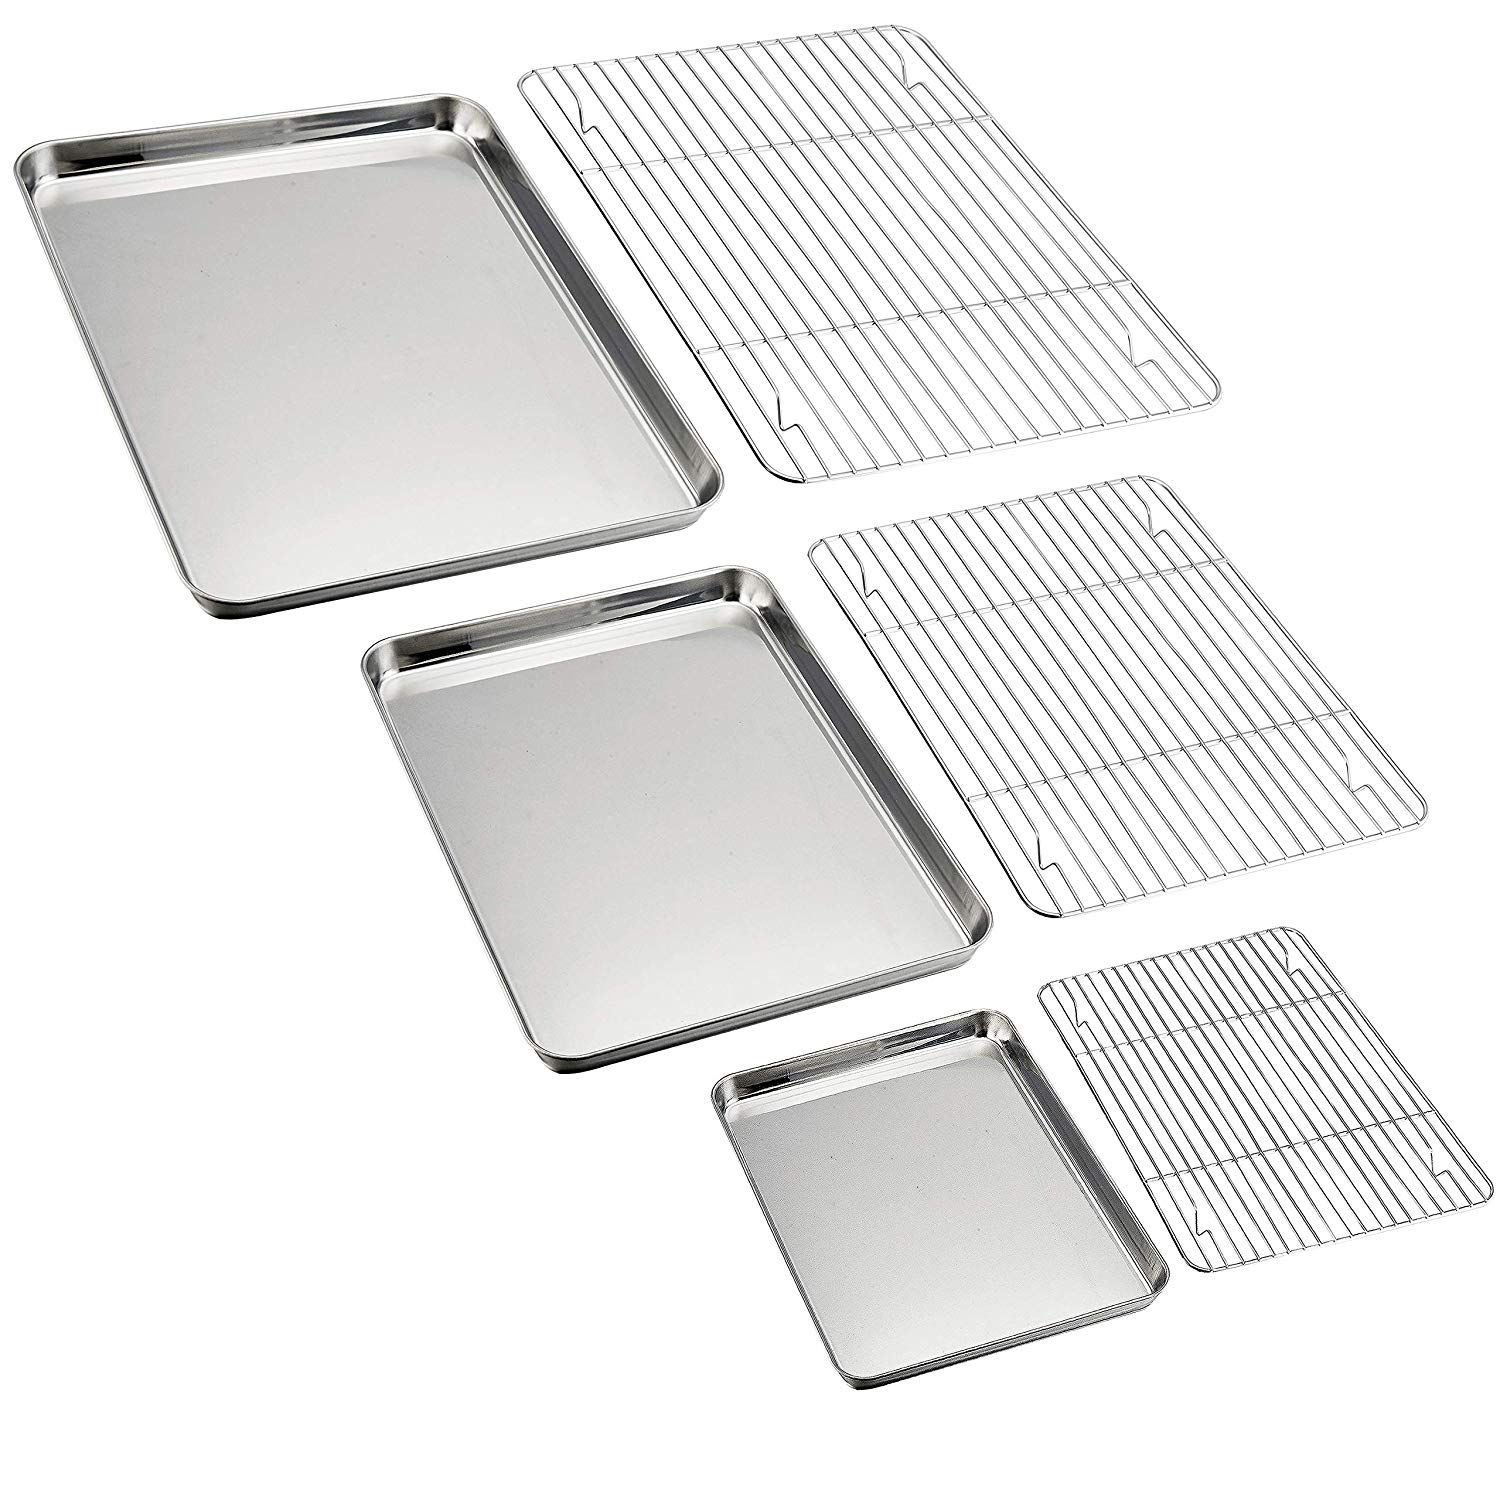 Pandp Chef Baking Sheet And Rack Set 6 Pack 3 Sheets 3 Racks